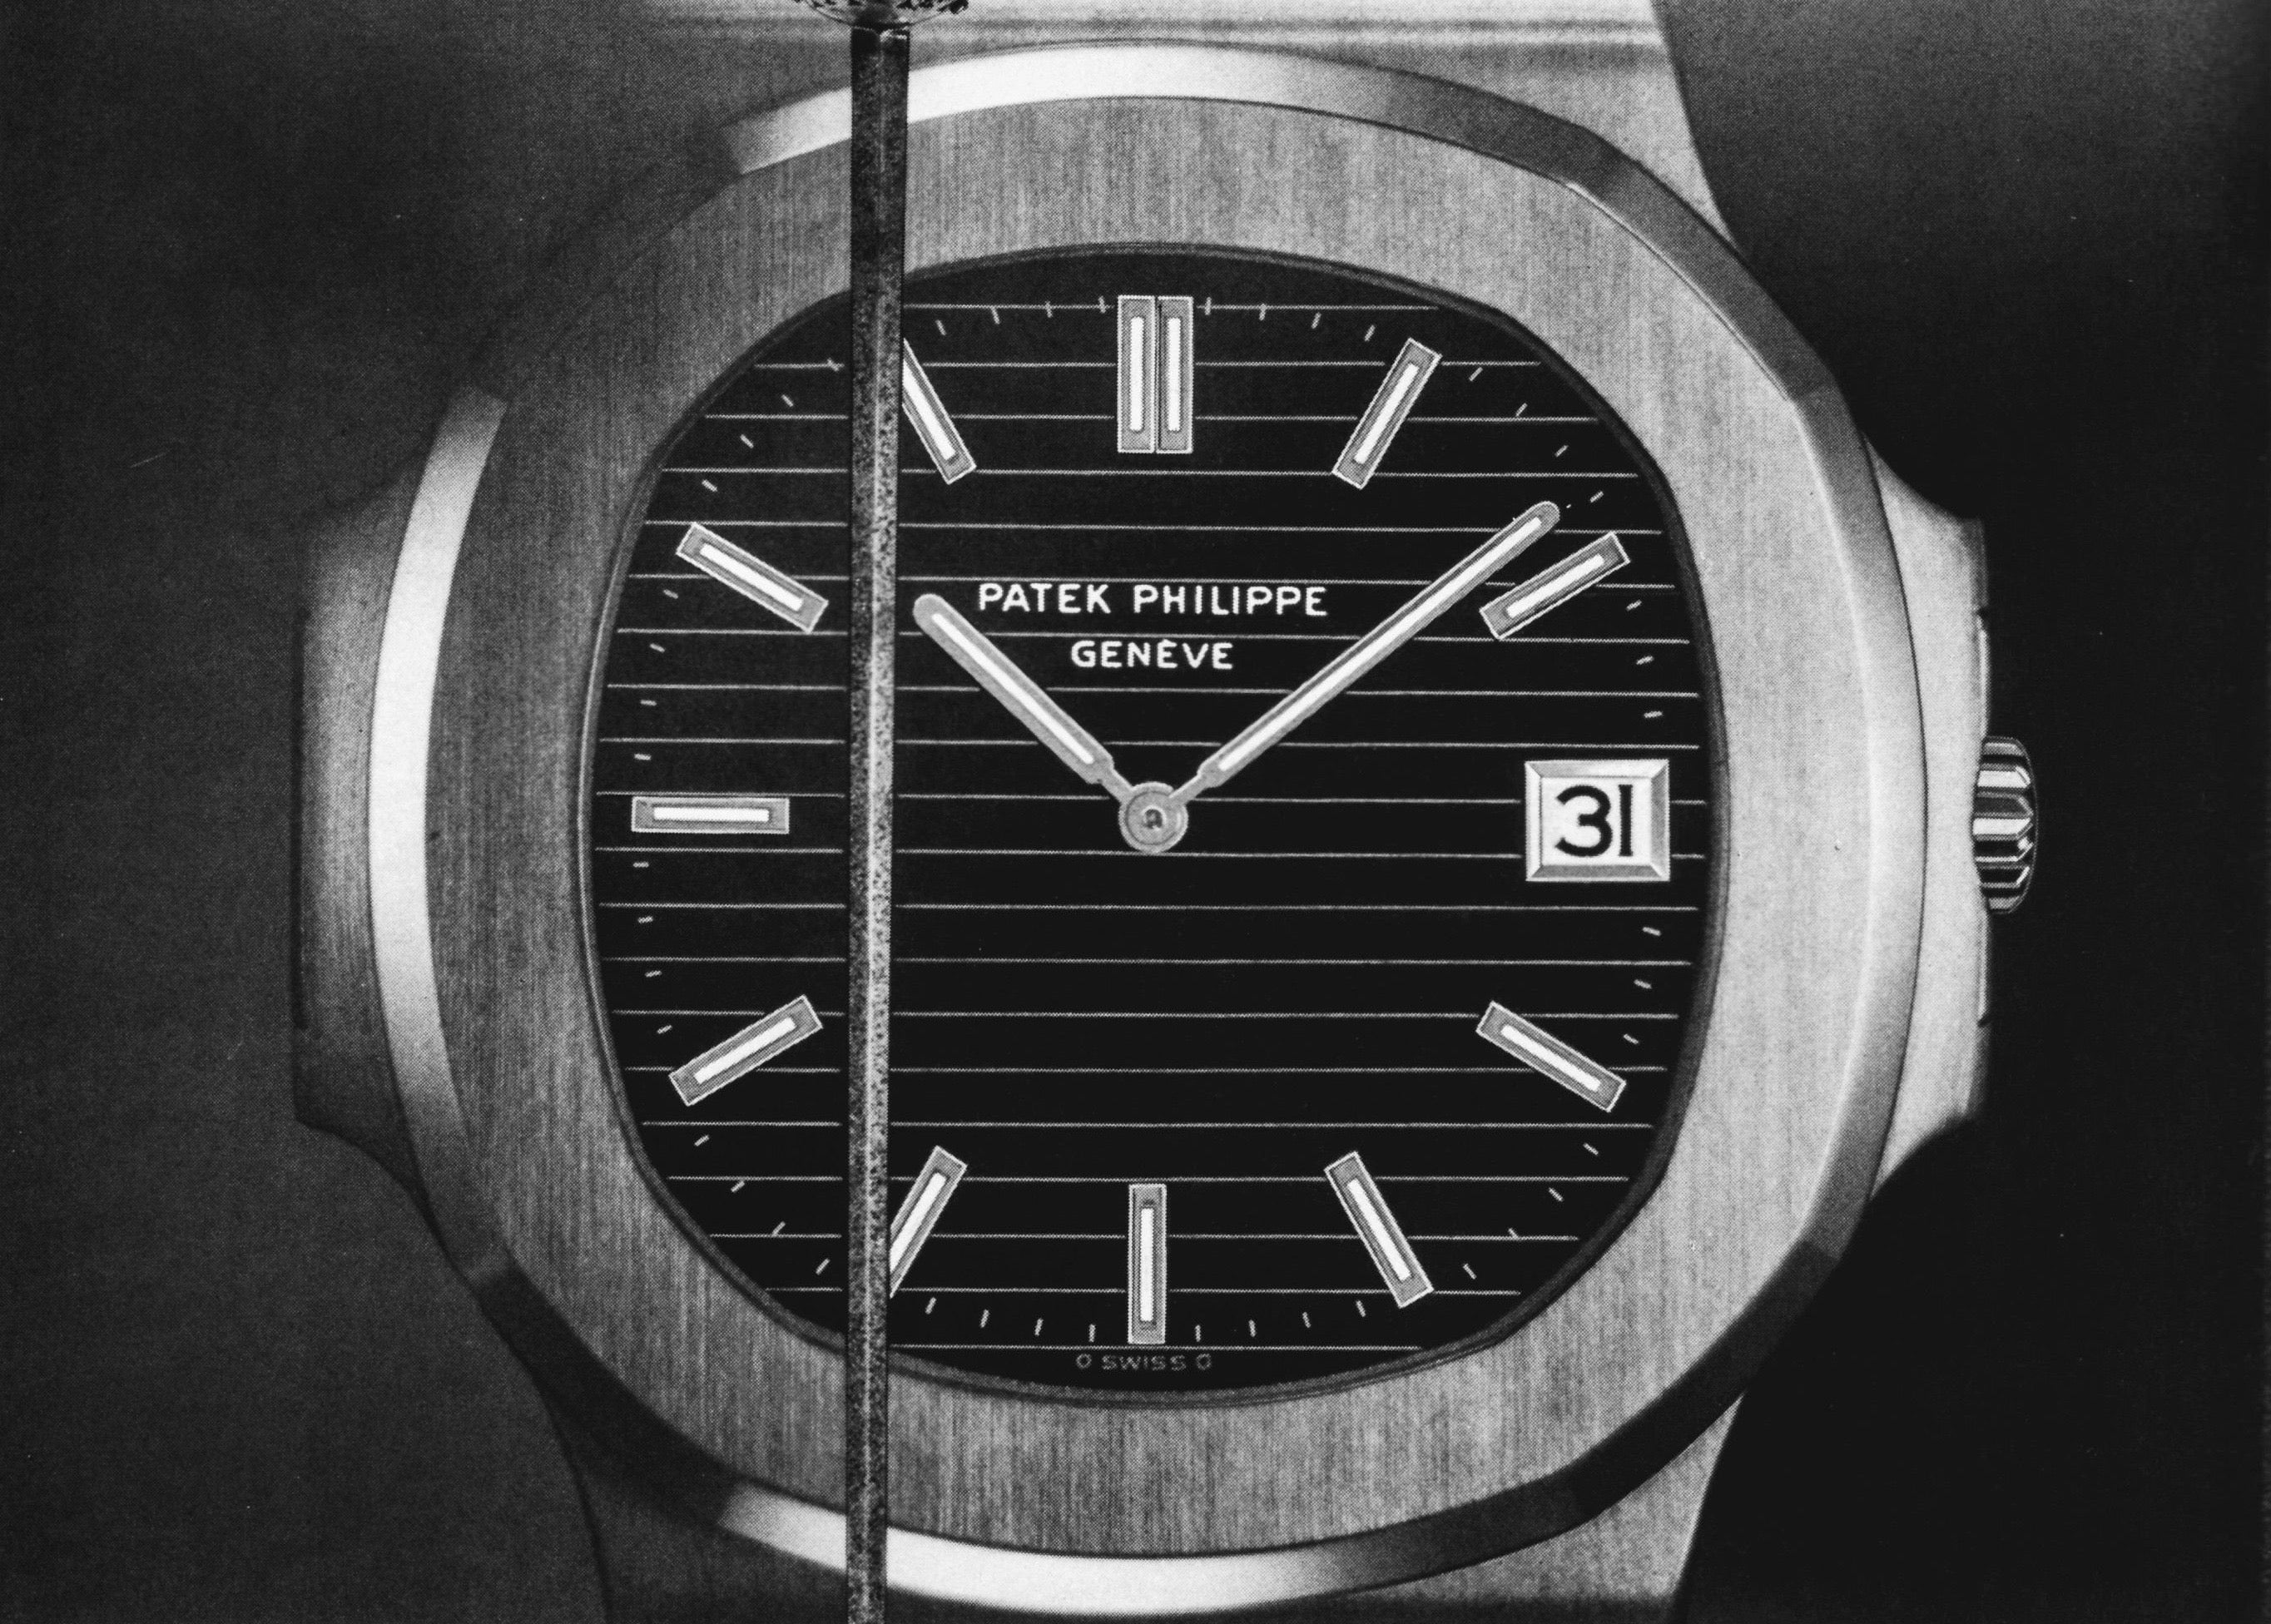 Patek Philippe nautilus advertisement from the 1970s in black and white from AdPatina for A Collected Man London